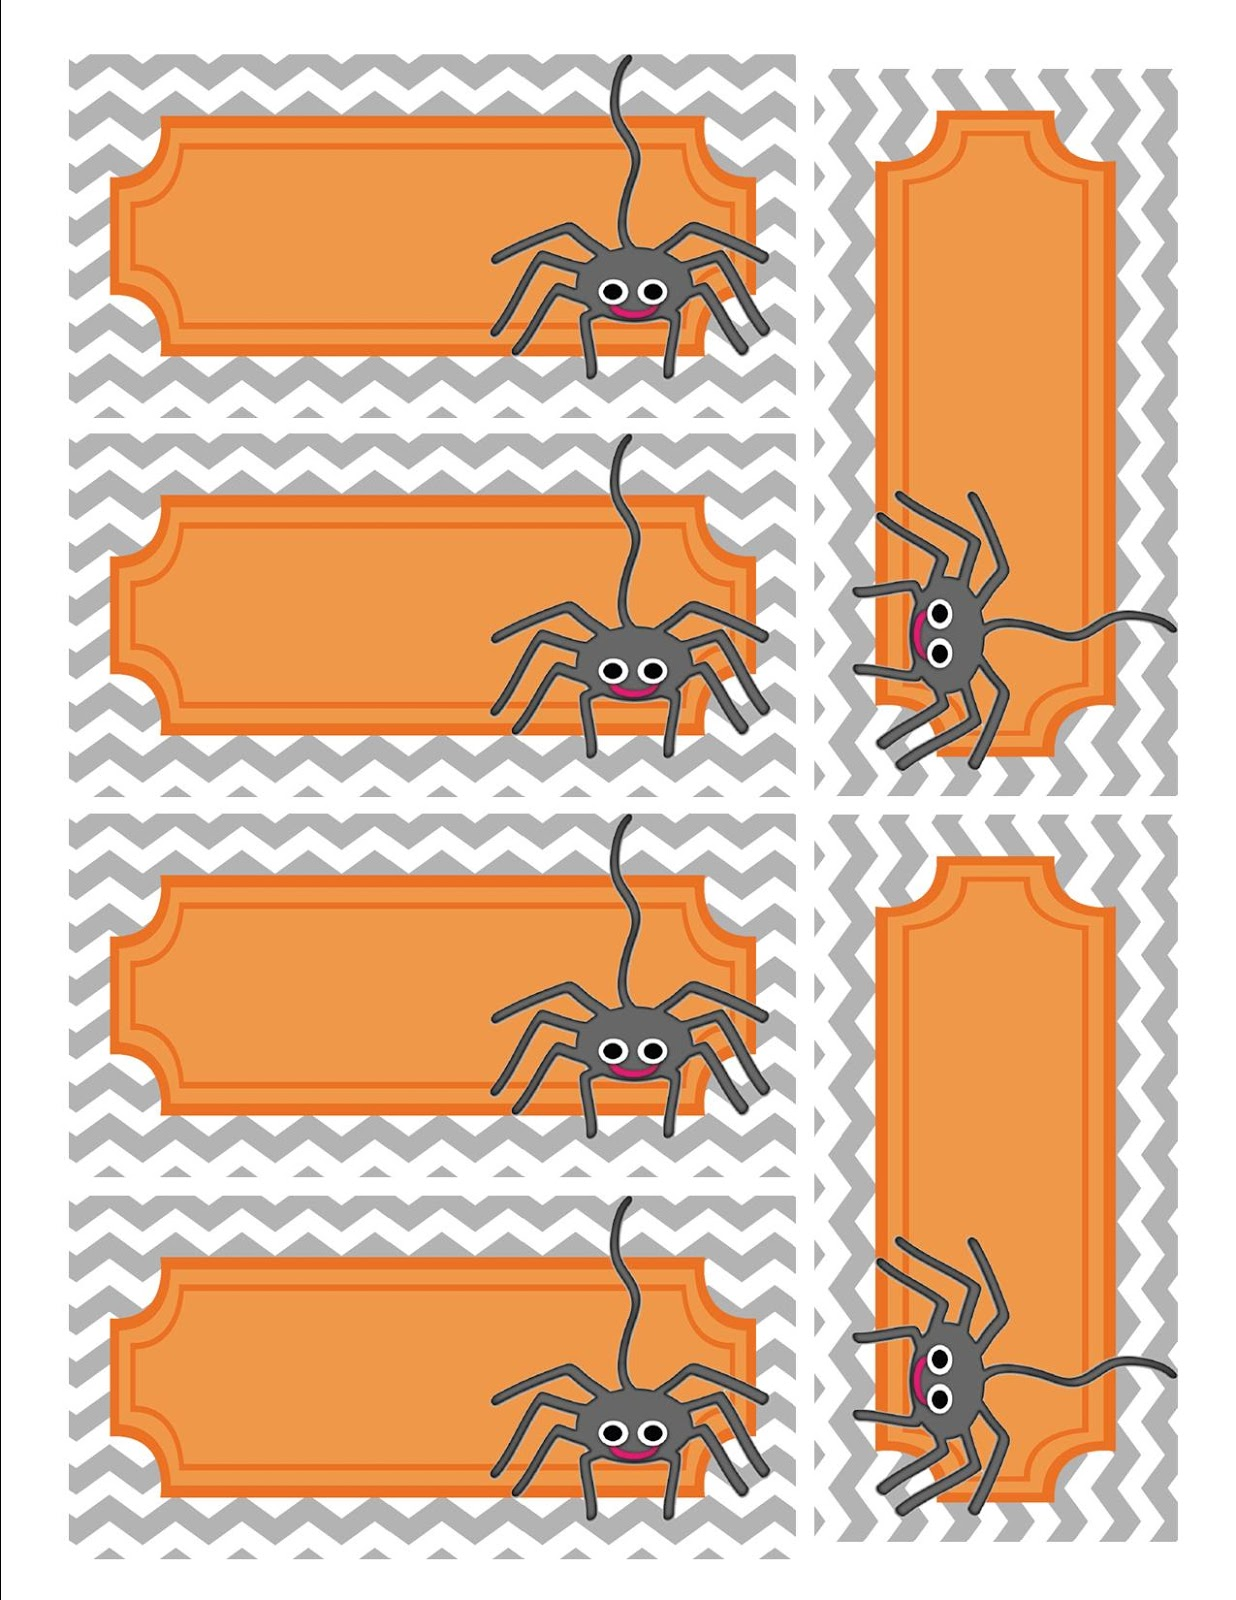 Printable Halloween T Tags From Land O Lakes Cute Printable Halloween T Tags On The